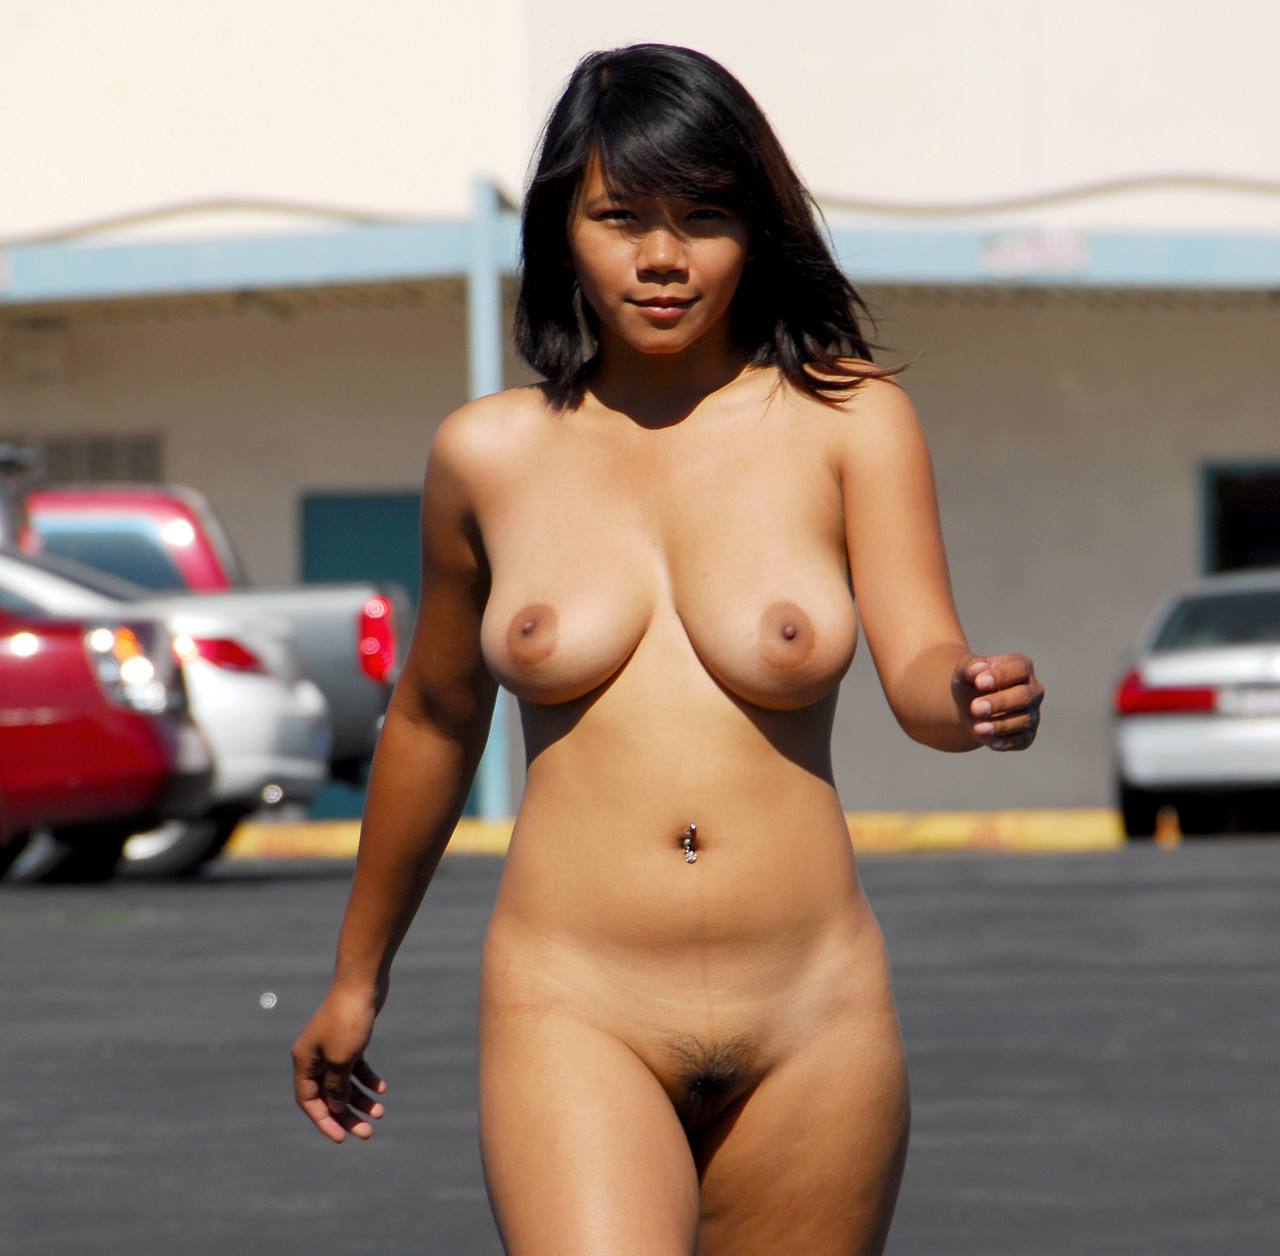 Asian girl public nude